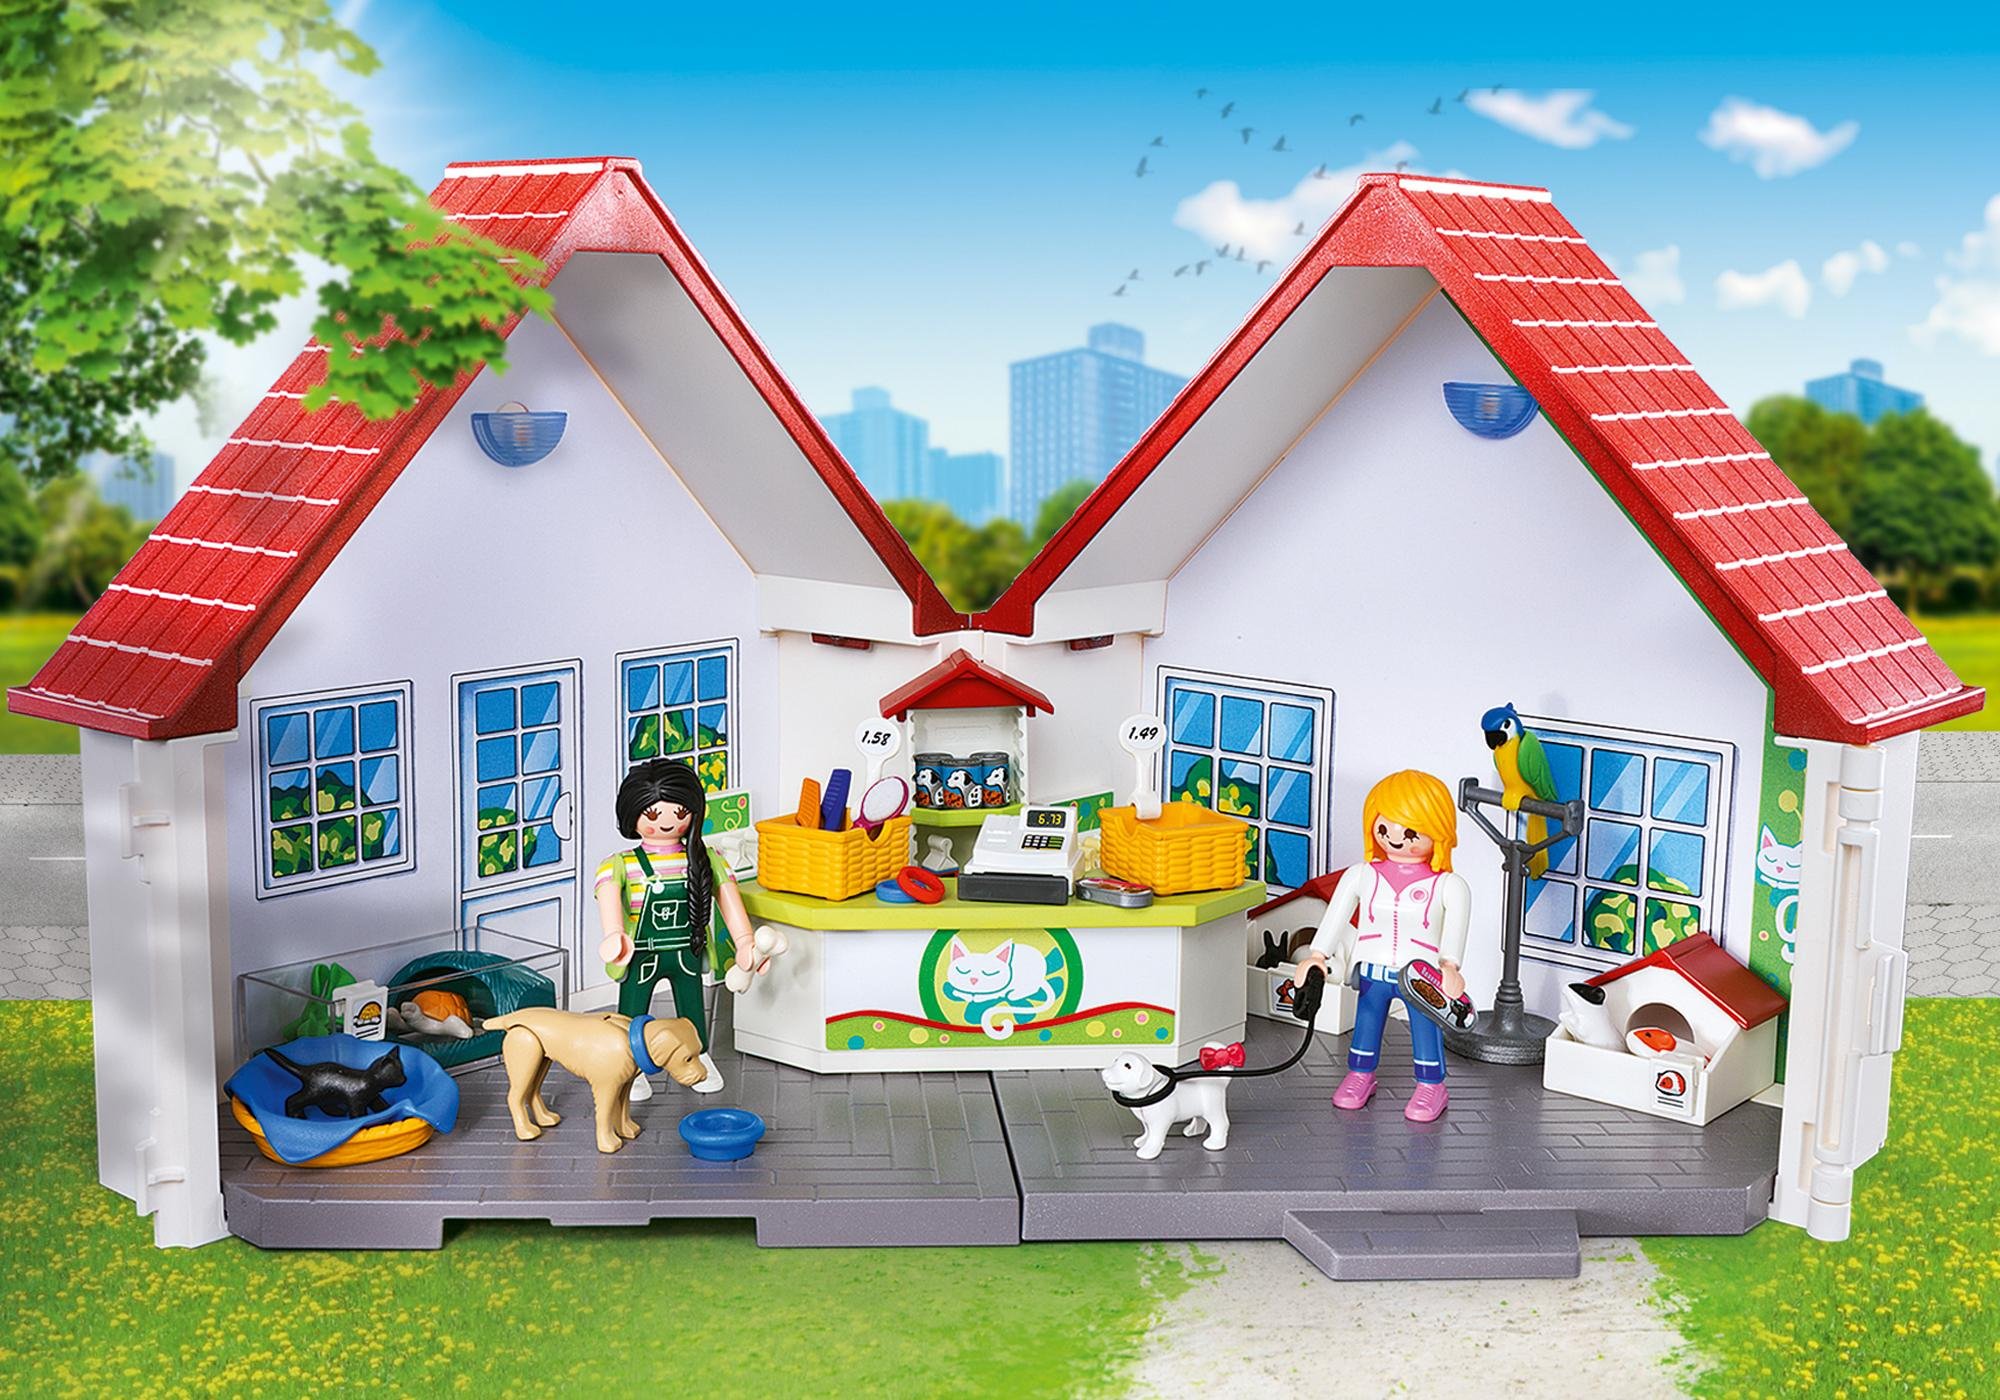 http://media.playmobil.com/i/playmobil/5672_product_extra1